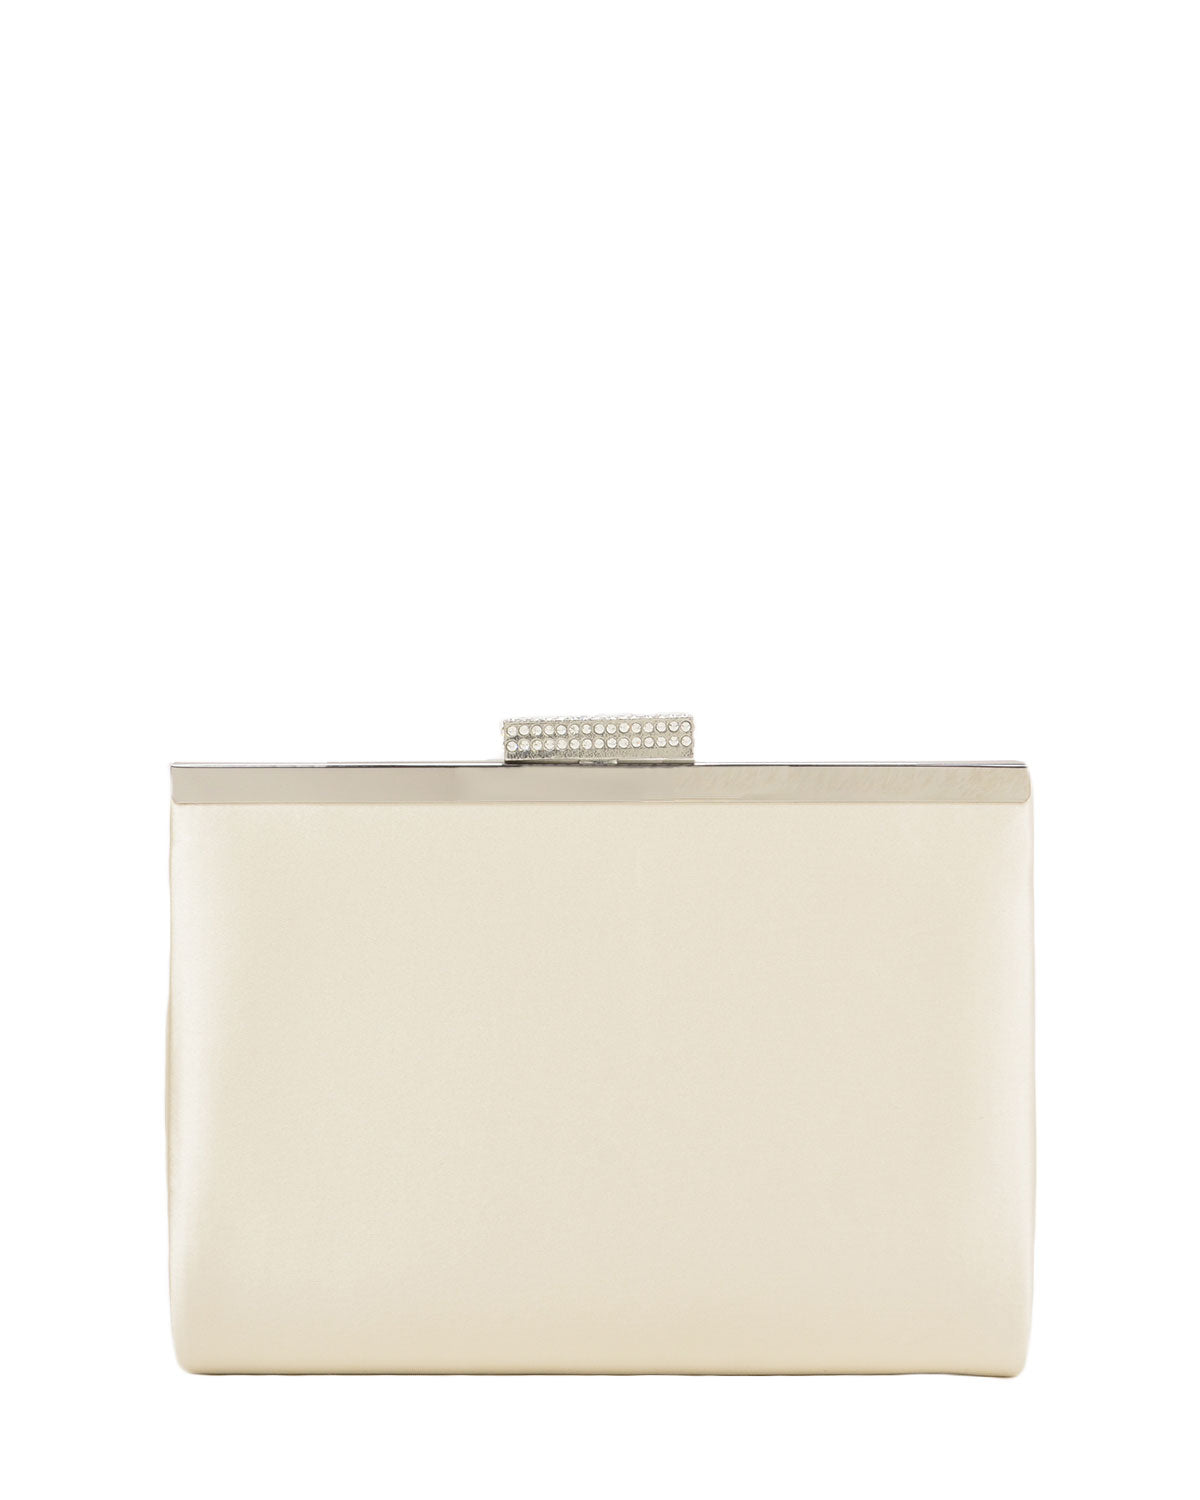 Badgley Mischka Clutch - Alice